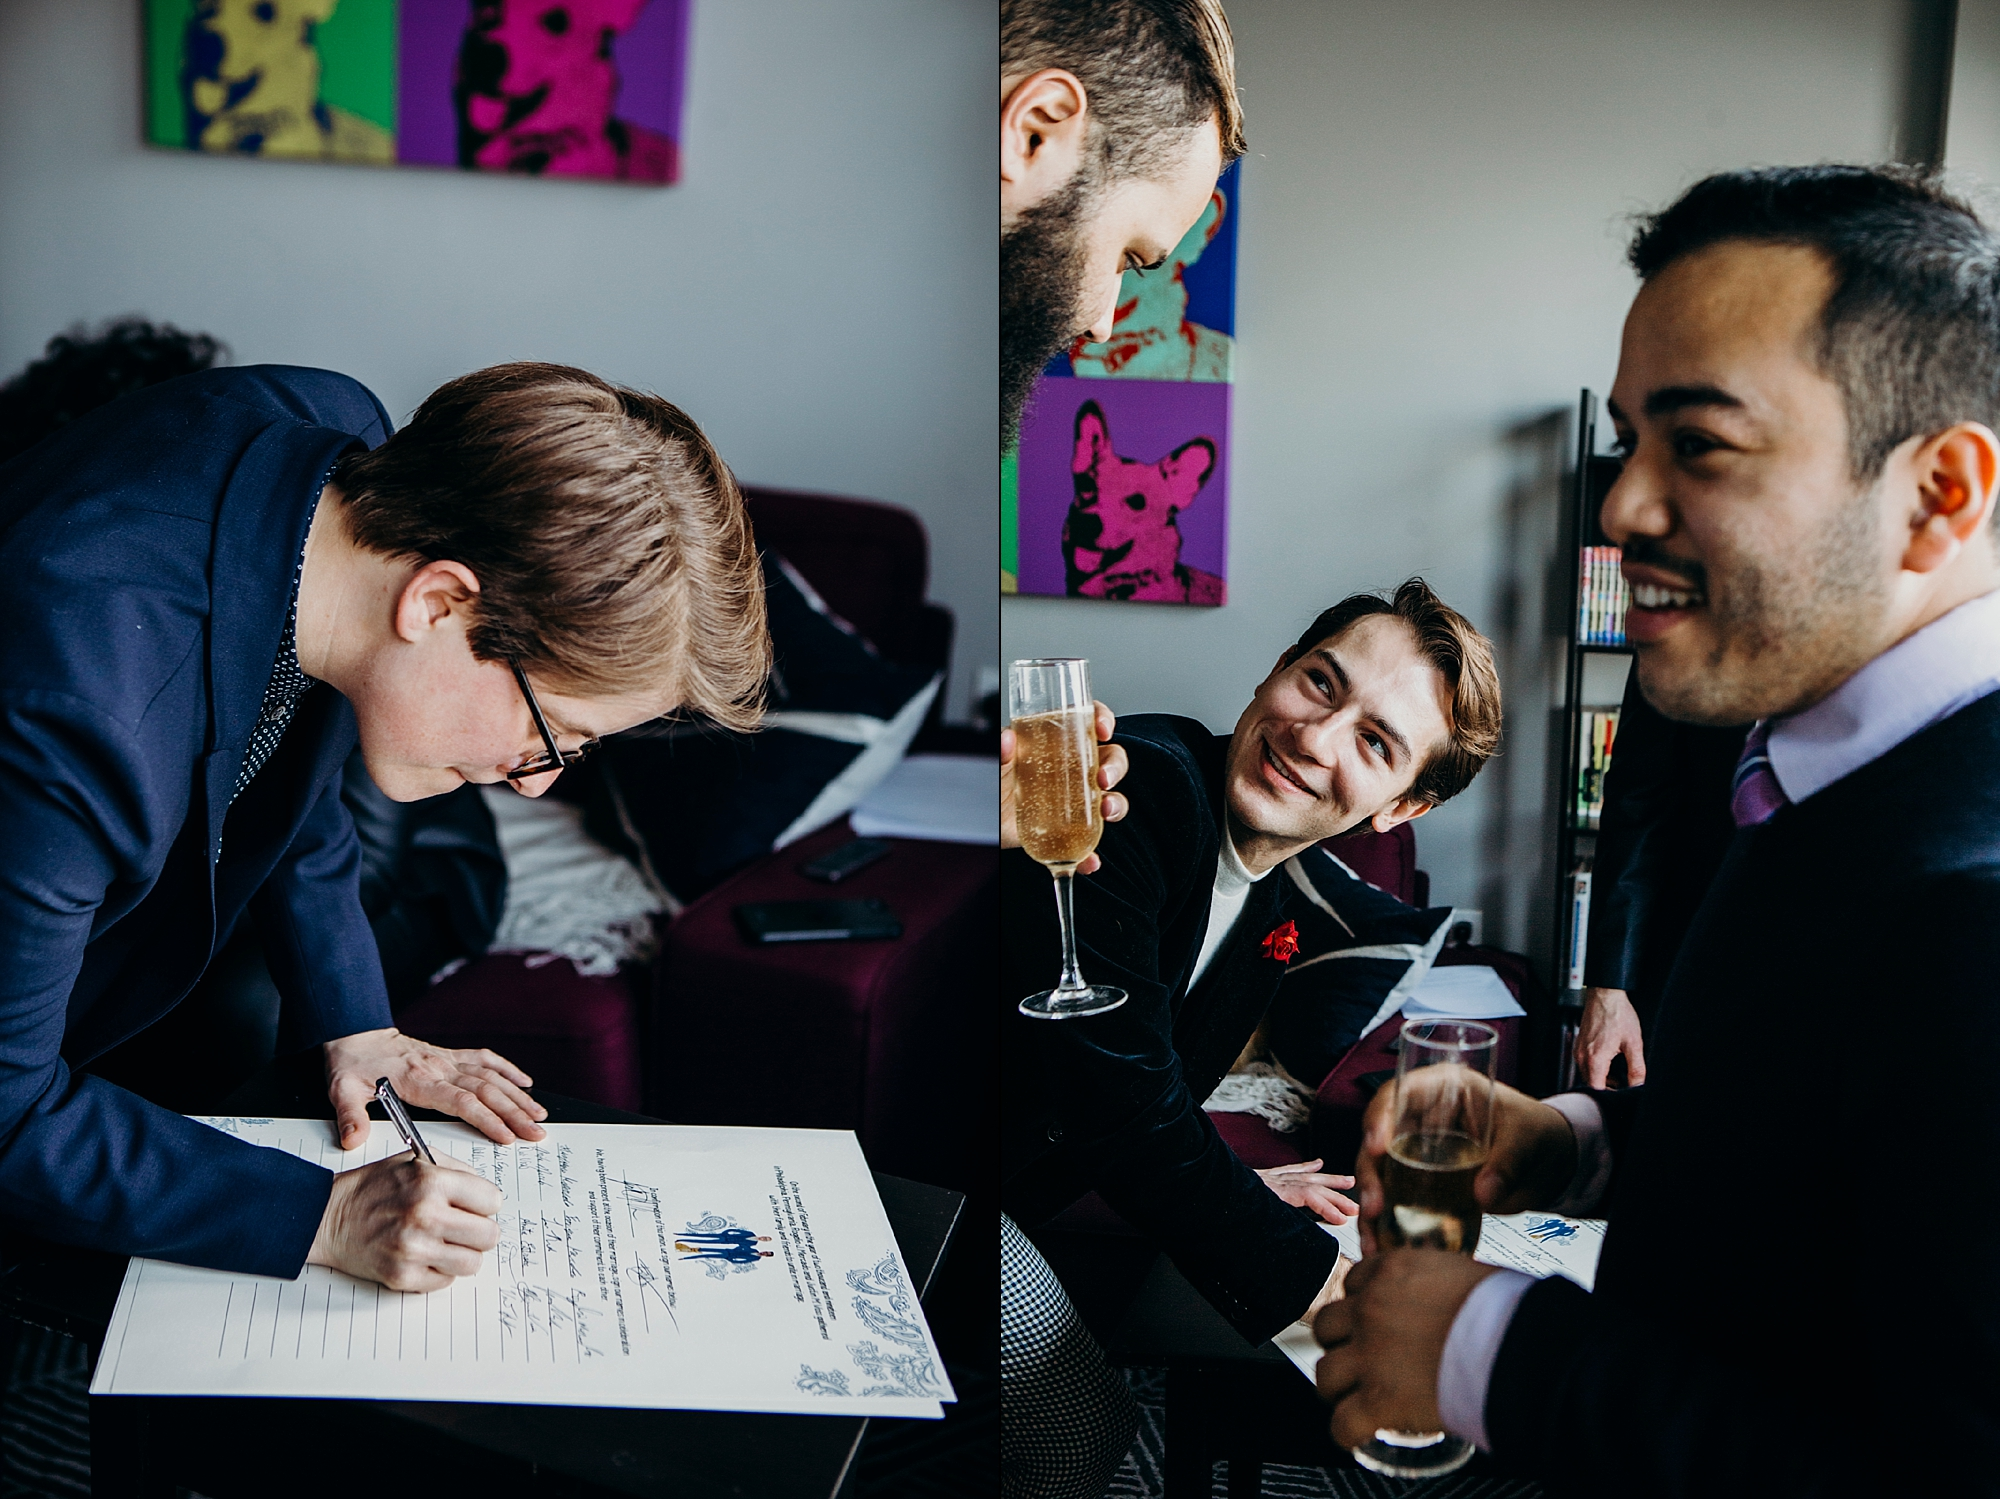 Joe_Mac_Creative_Philadelphia_Philly_LGBT_Gay_Engagement_Wedding_Photography__0081.jpg